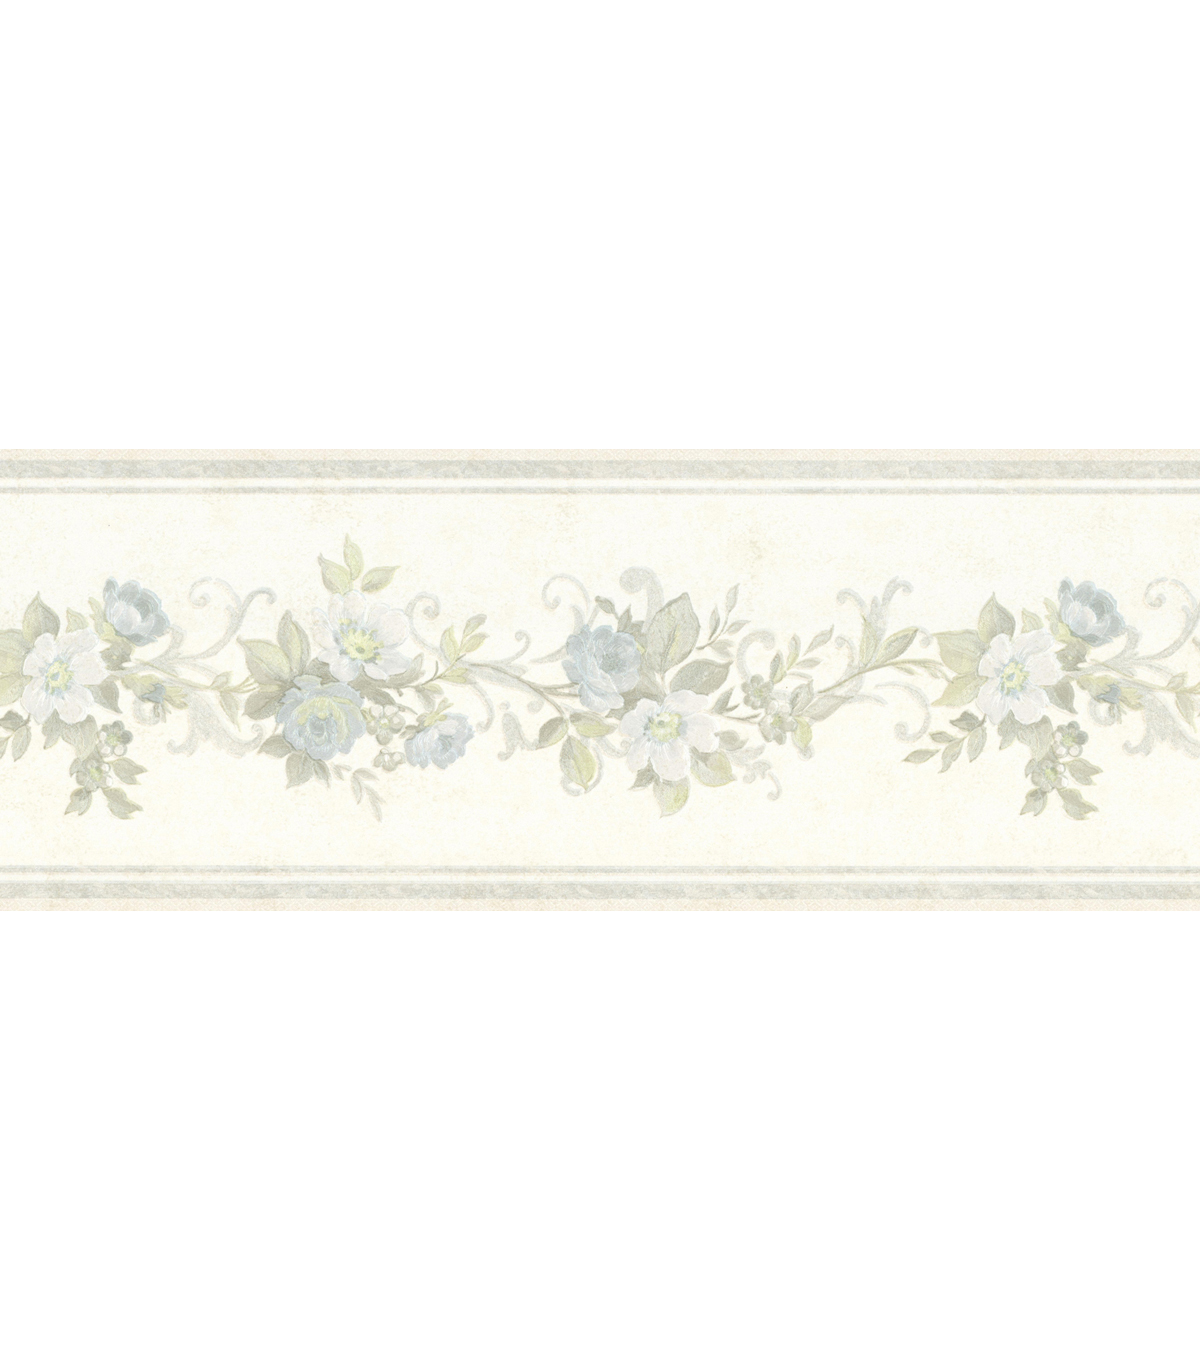 Lory Light Blue Floral Wallpaper Border Sample